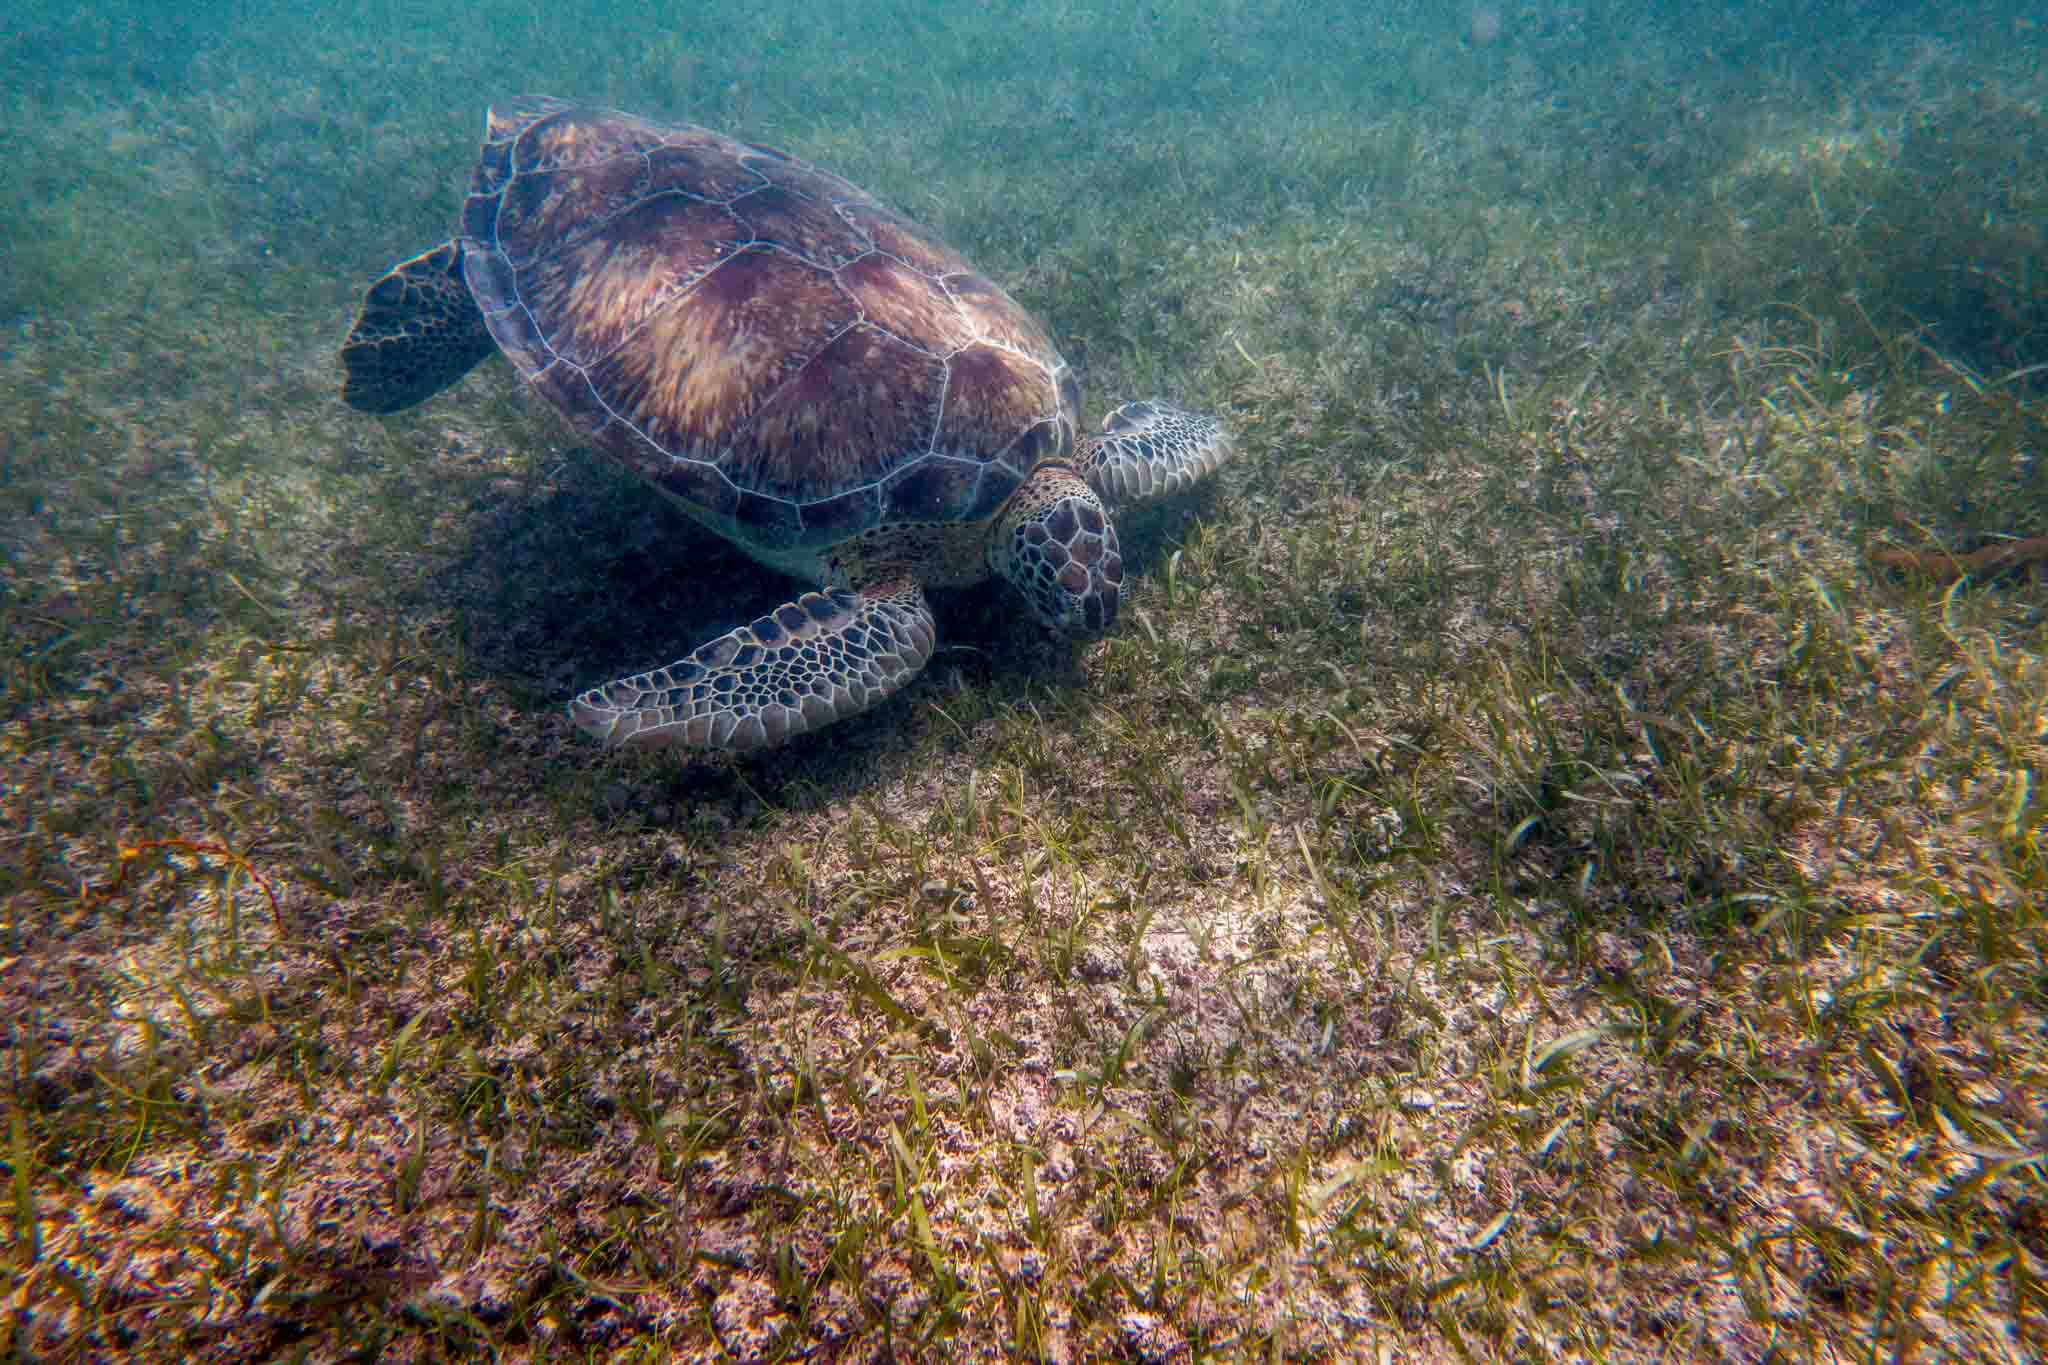 One of the Akumal turtles feeding on the sea grass. This experience is surely some of the best snorkeling in Mexico